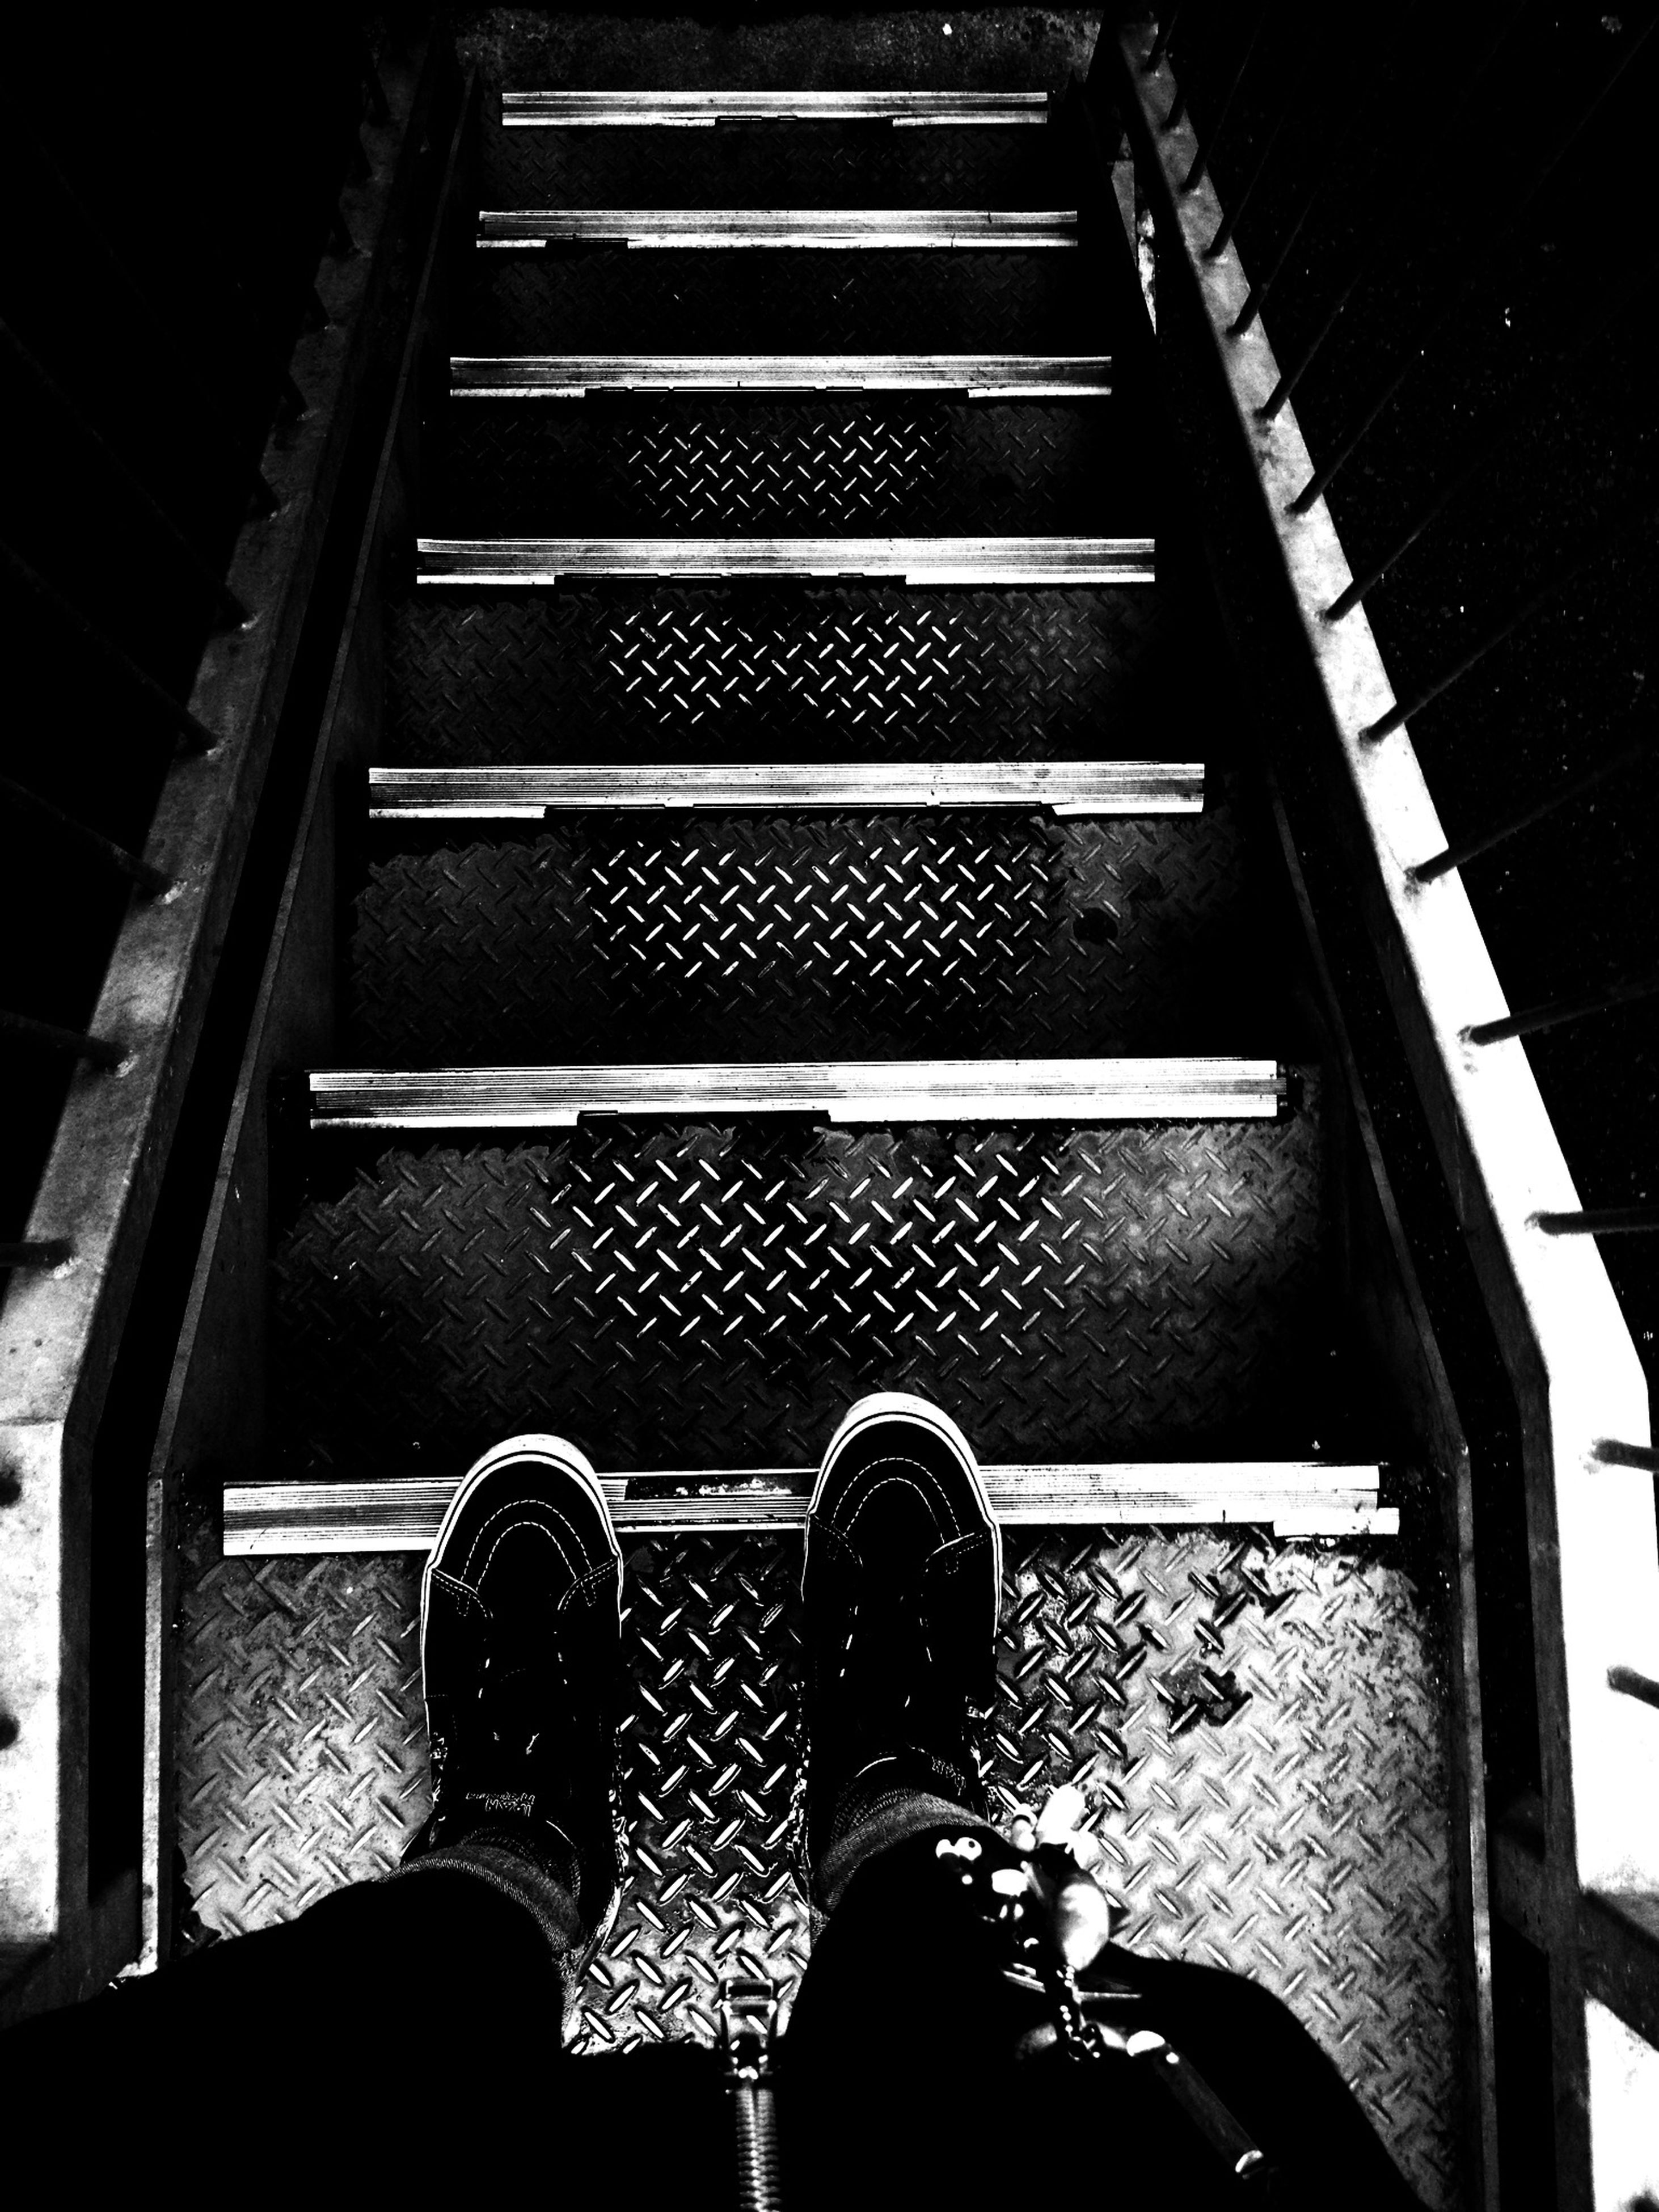 indoors, men, lifestyles, escalator, leisure activity, standing, low section, person, steps, steps and staircases, staircase, unrecognizable person, railing, technology, rear view, personal perspective